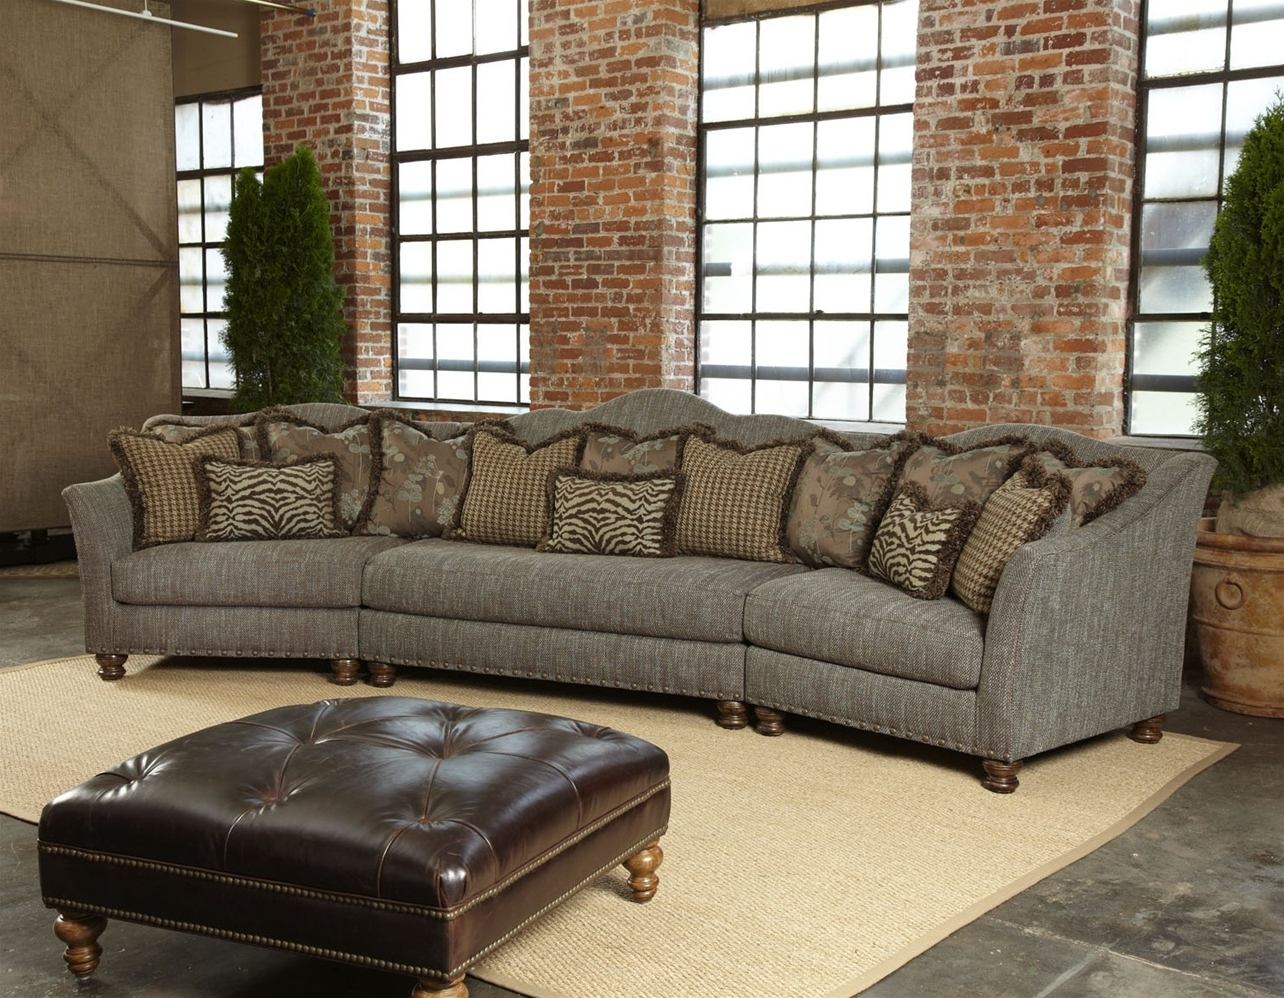 Good Quality Sectional Sofas With 2019 Good Quality Sectional Sofas – Cleanupflorida (View 3 of 20)